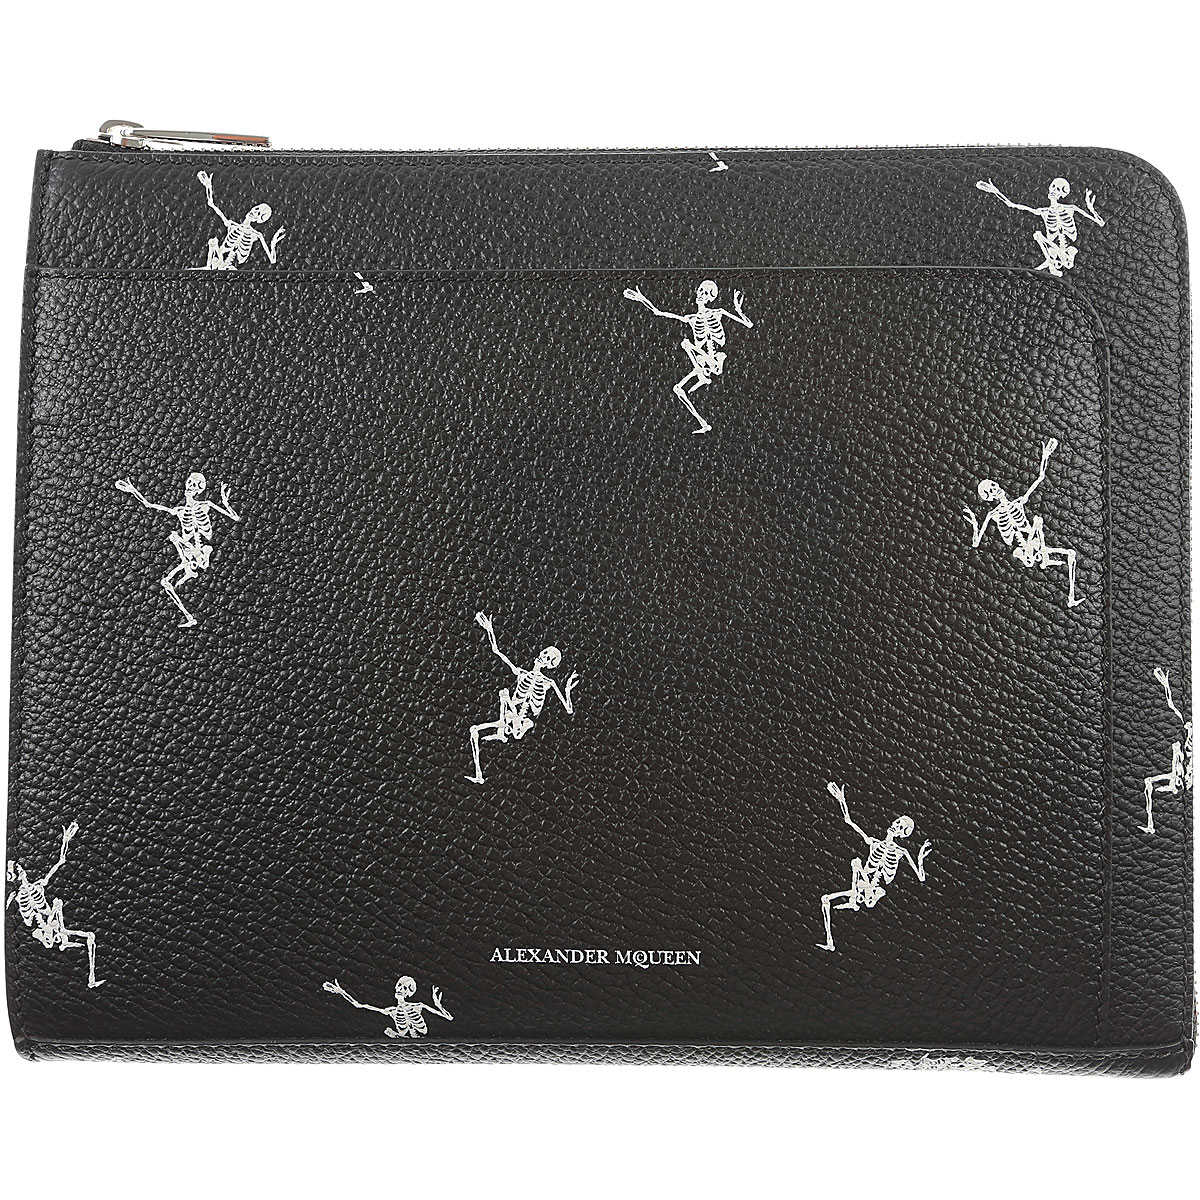 Christian Dior Pouches On Sale